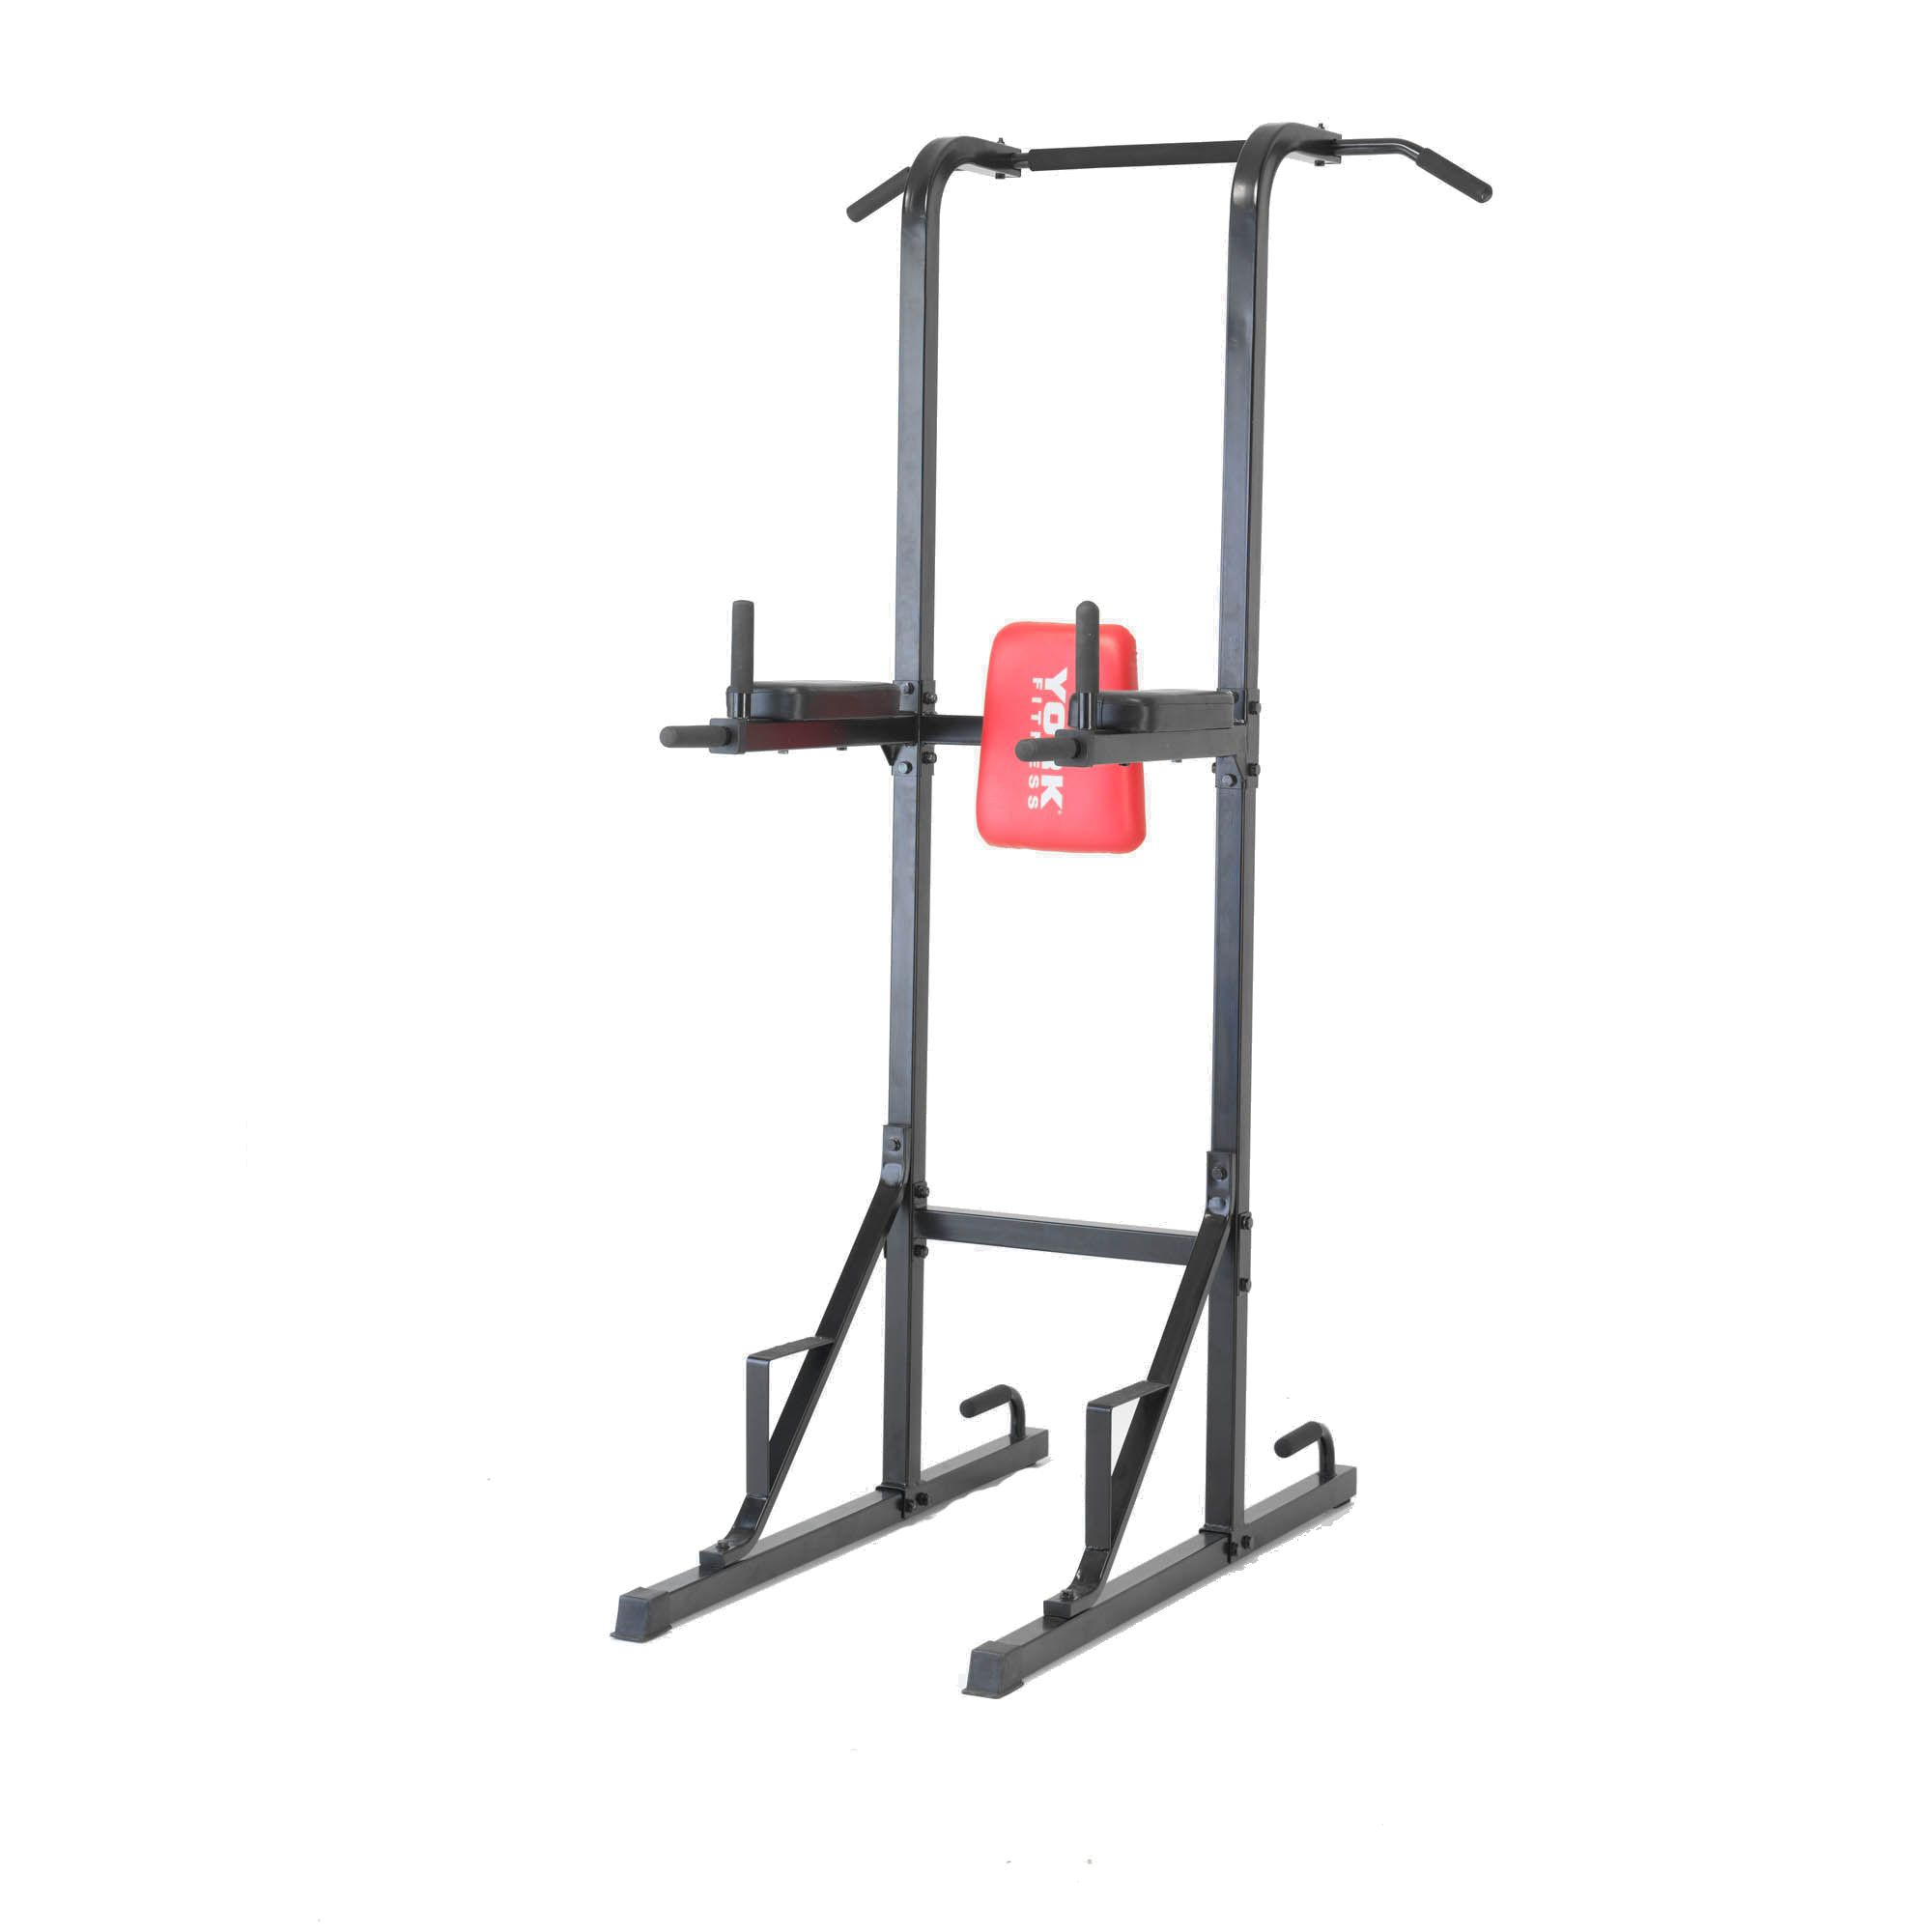 York workout tower - Chaise romaine fitness doctor razor cut ...